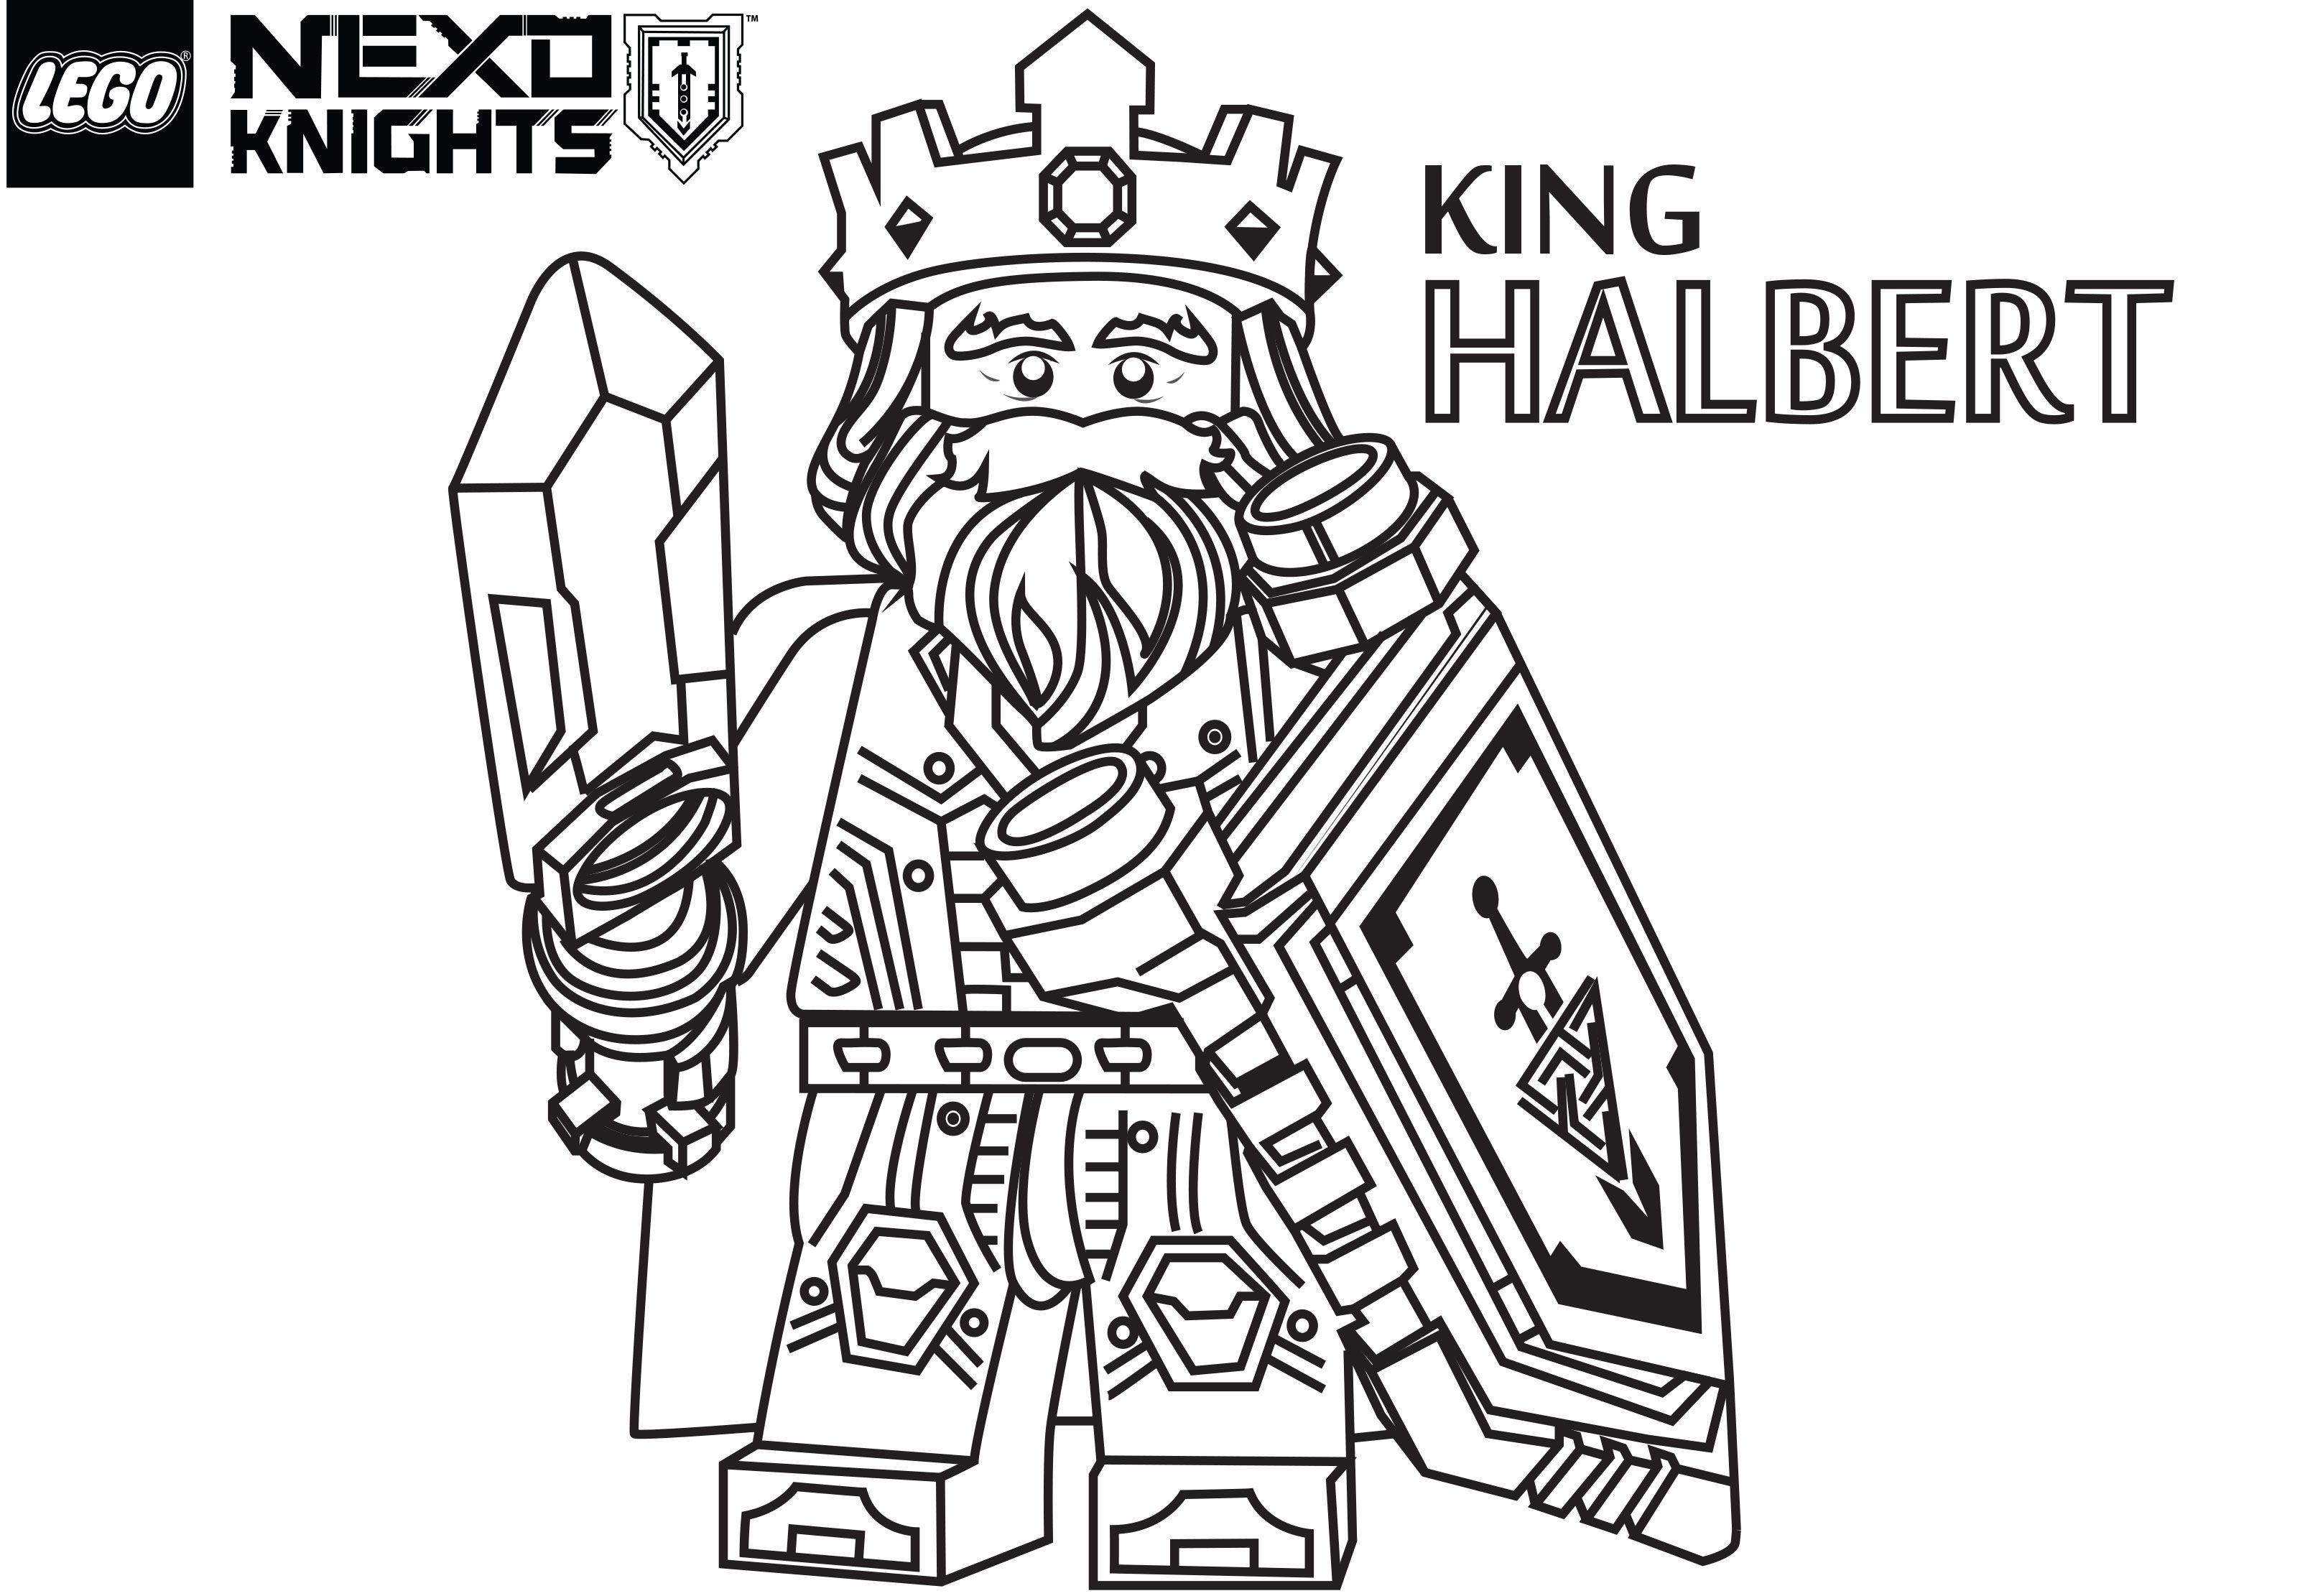 Lego Nexo Knights Coloring Pages : Nexo lego knights coloring pages sketch page